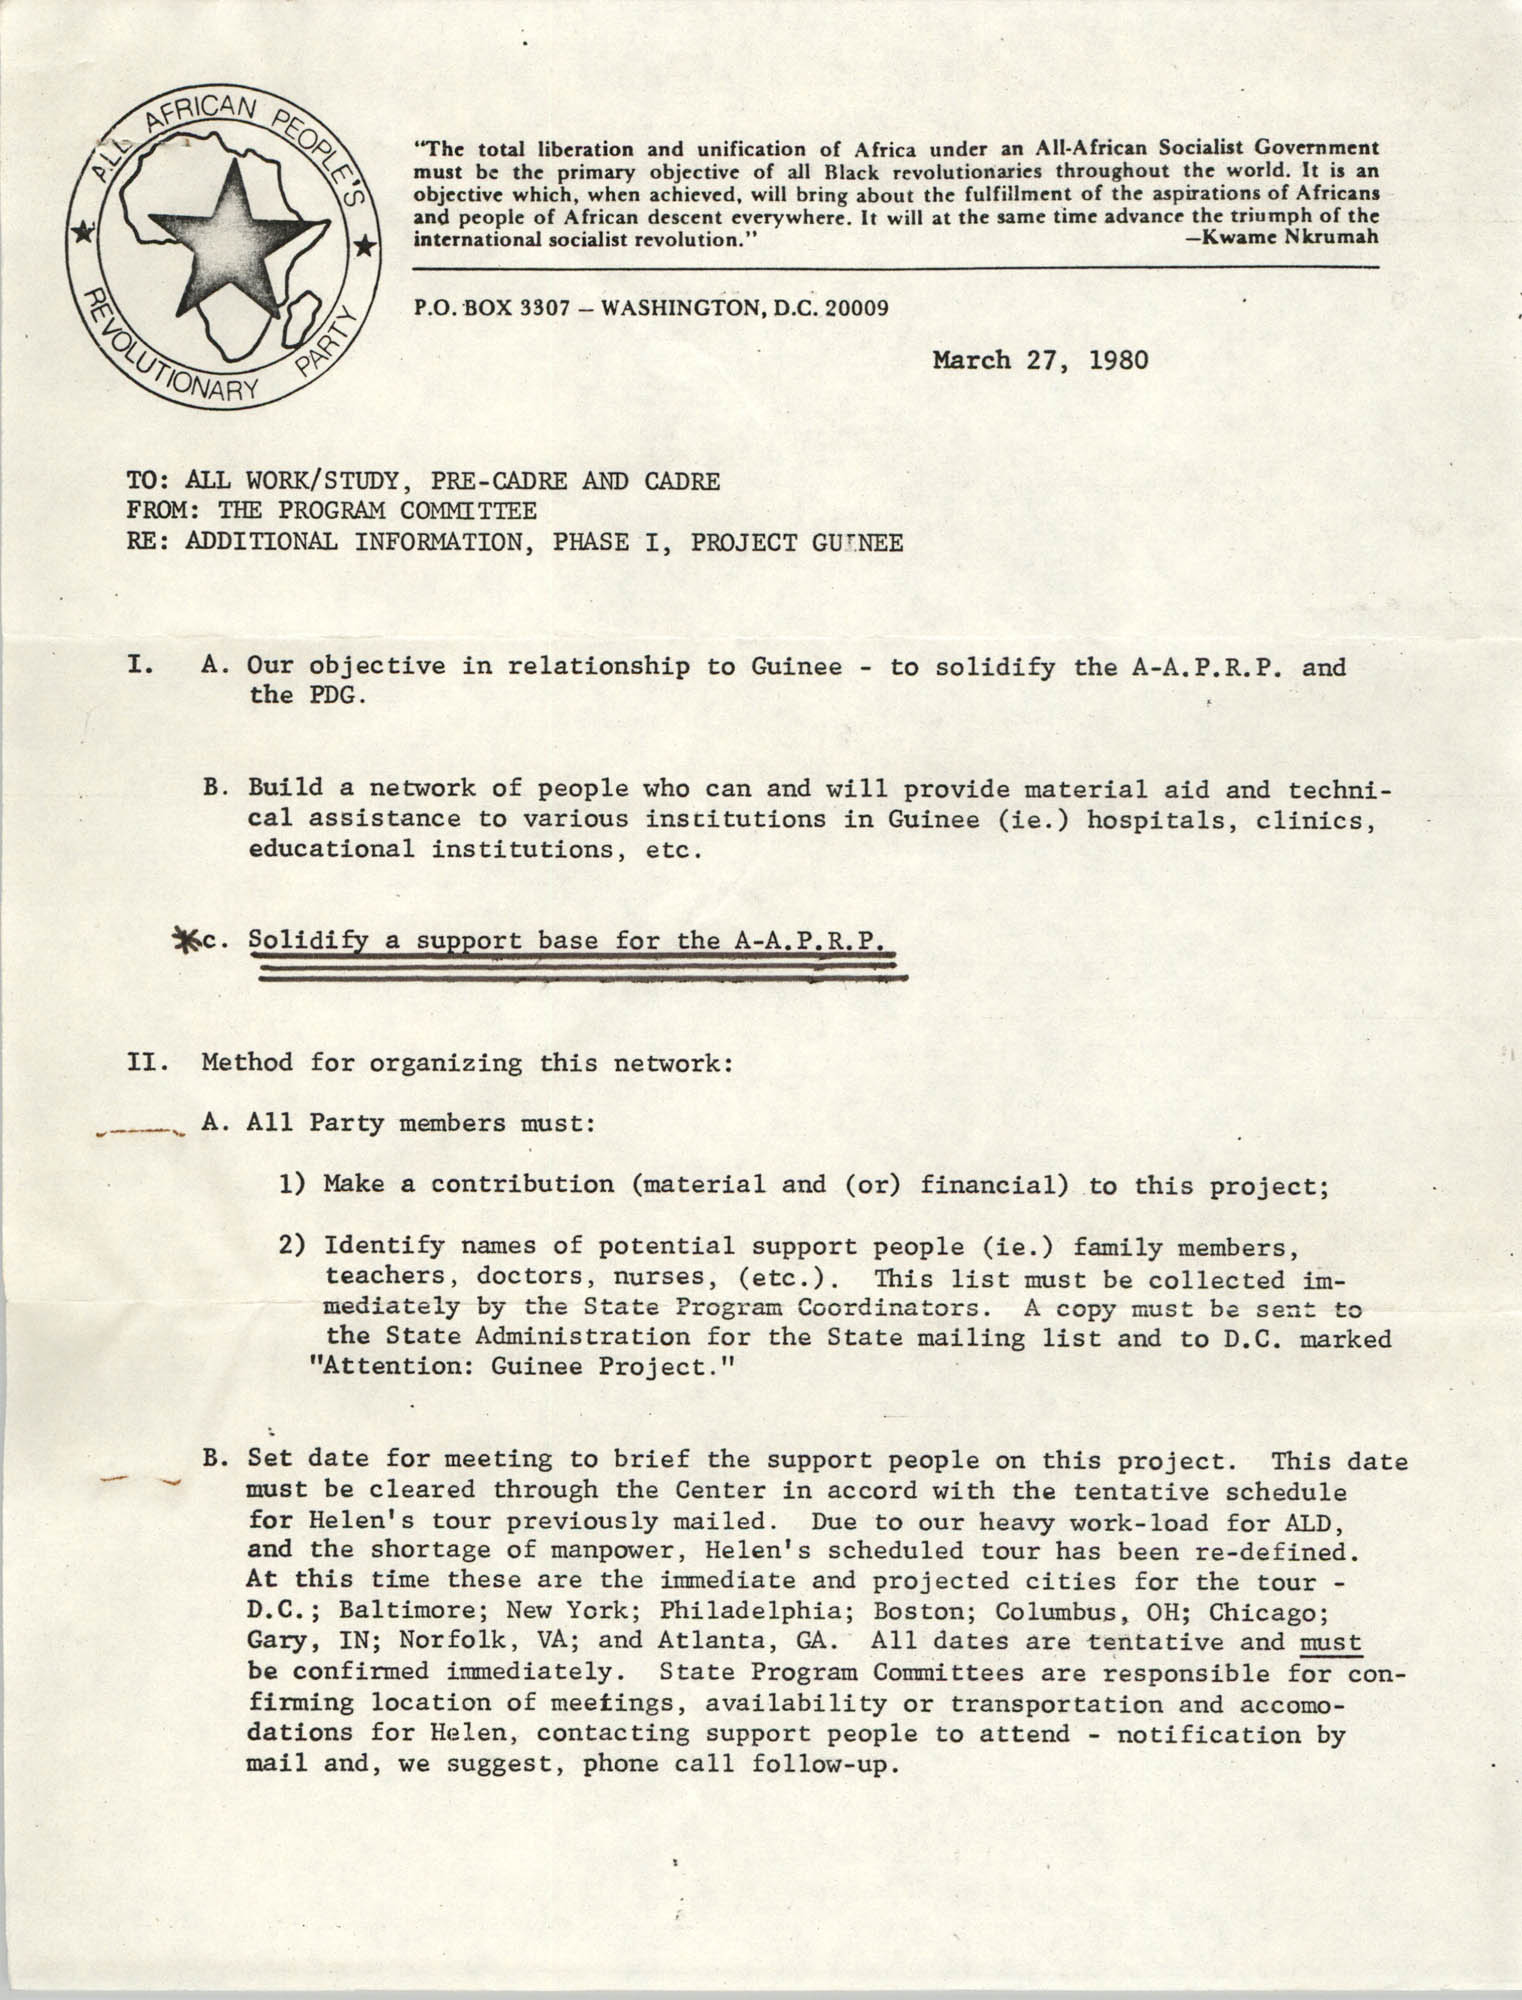 All African People's Revolutionary Party Memorandum, March 27, 1980